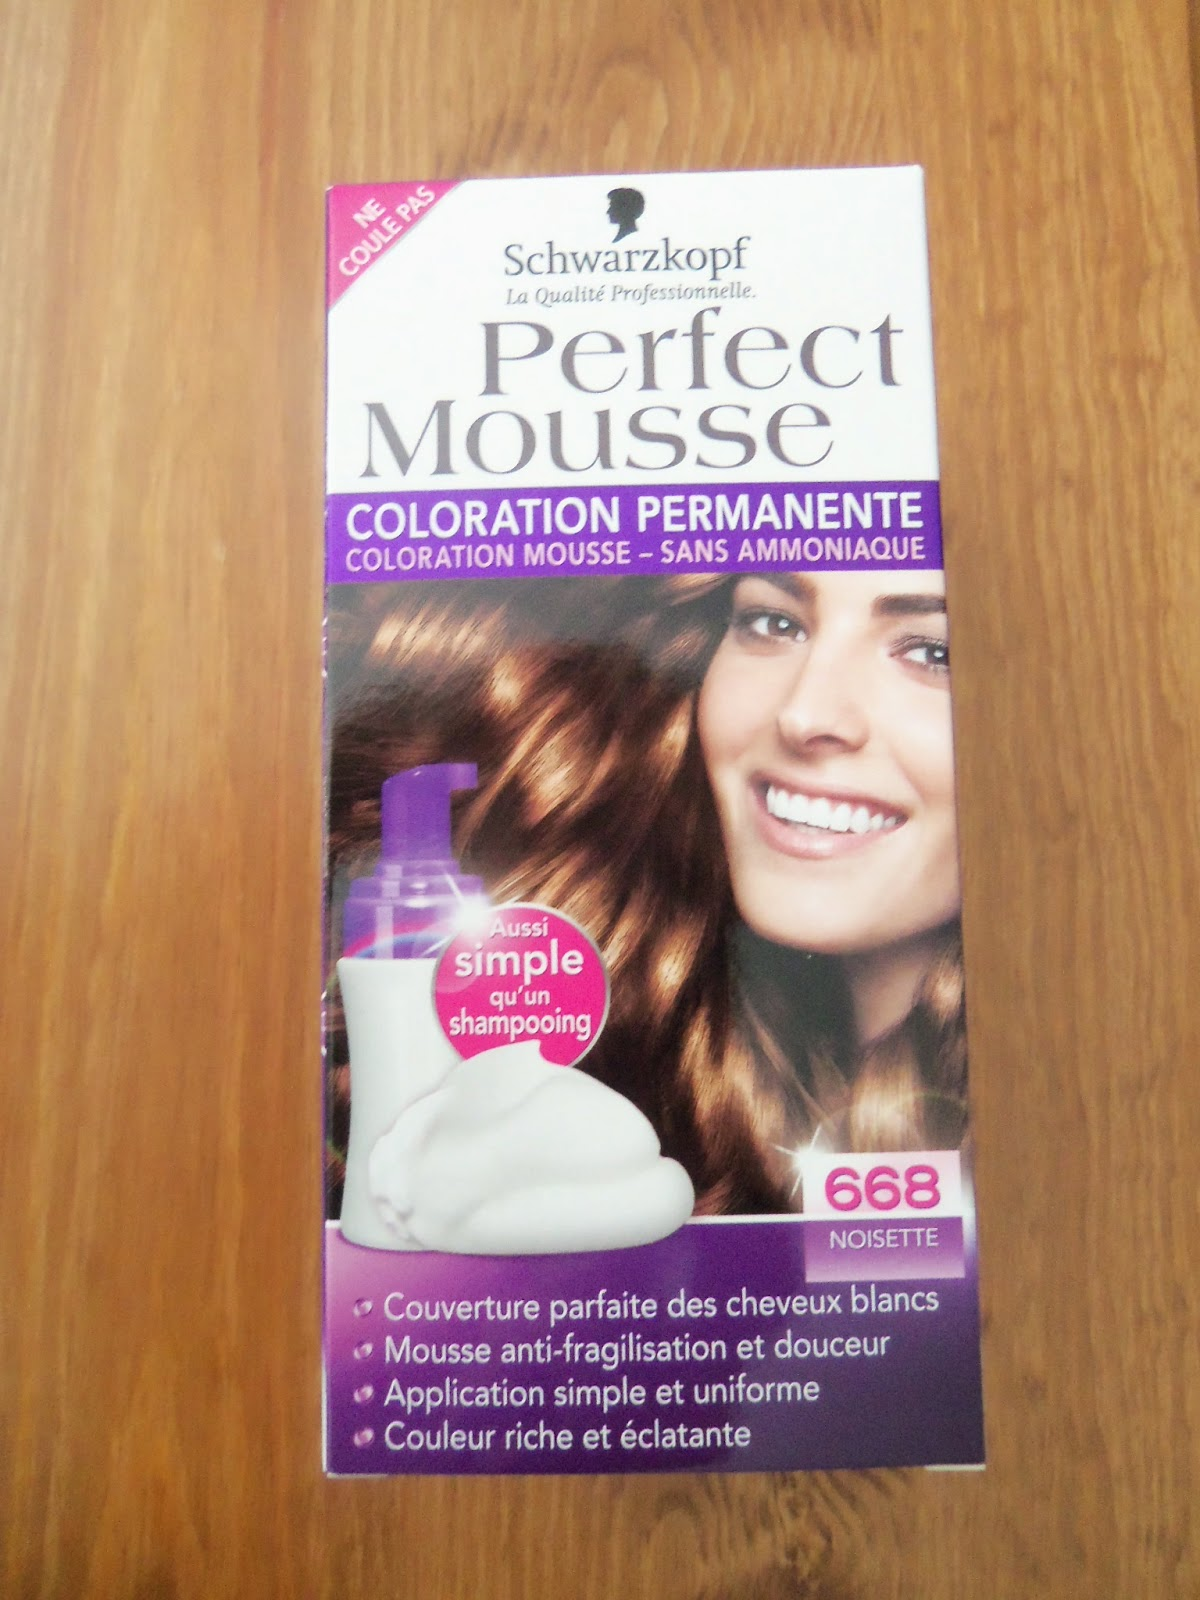 jai tent la coloration perfect mousse couleur noisette a la base je suis chatain clair il sagit dune coloration permanente sans ammoniaque - Coloration Cheveux Sans Ammoniaque